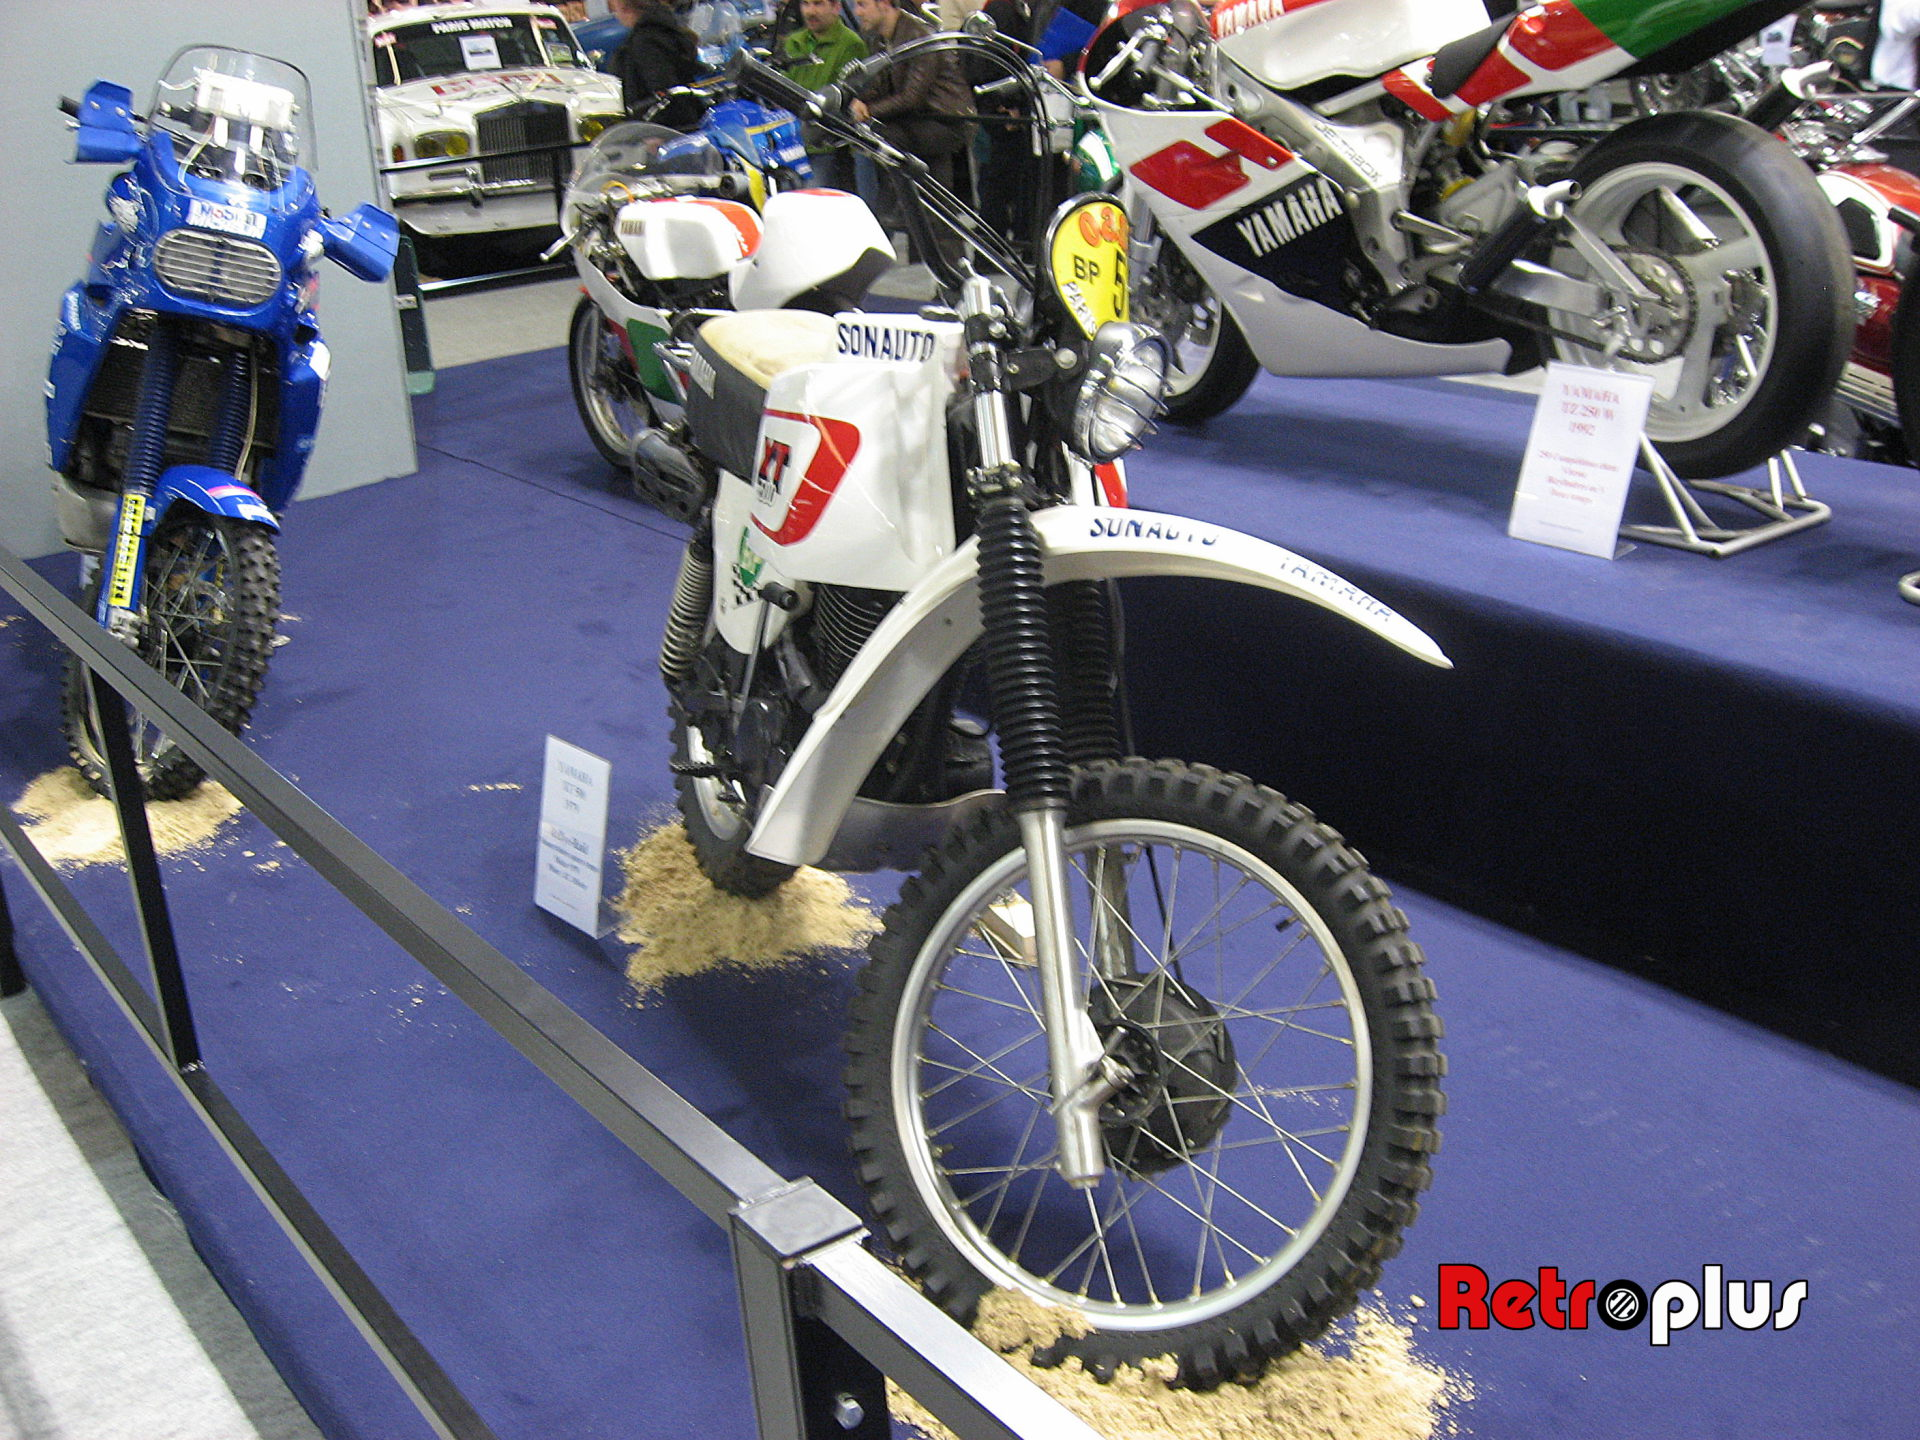 Retromobile2010-Motos-009